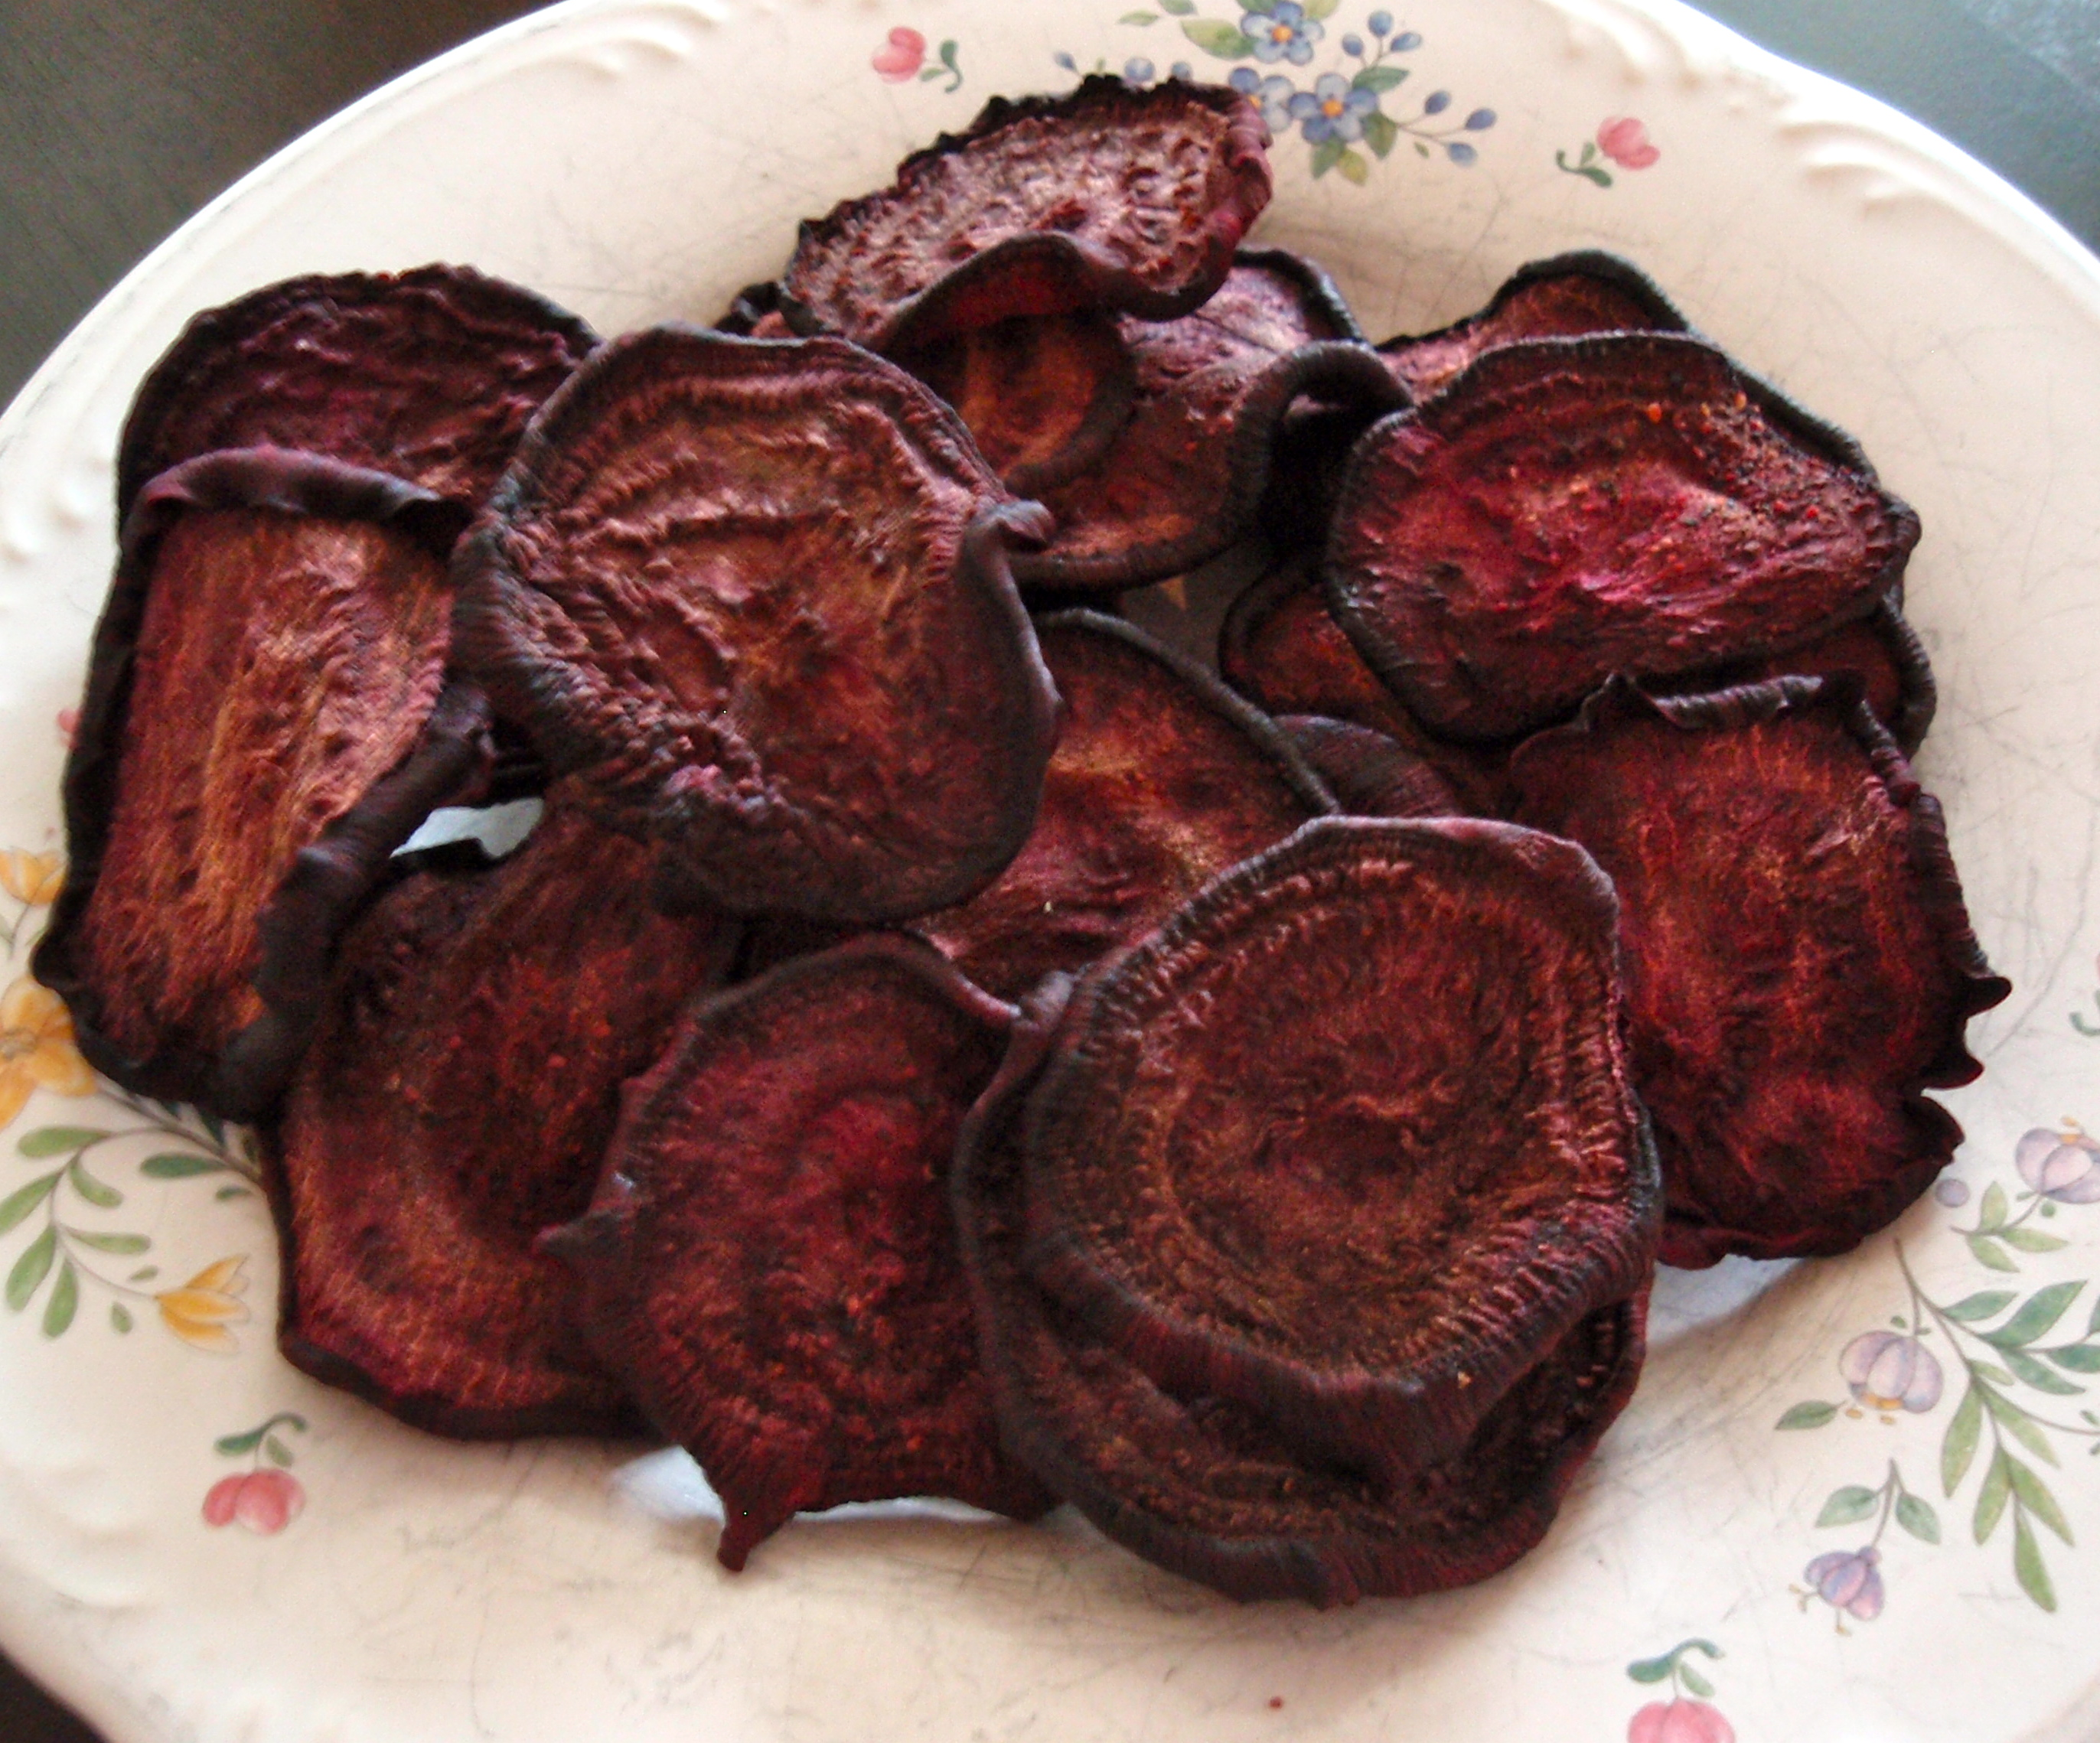 Beet Chips, The Healthy Alternative to Potato Chips